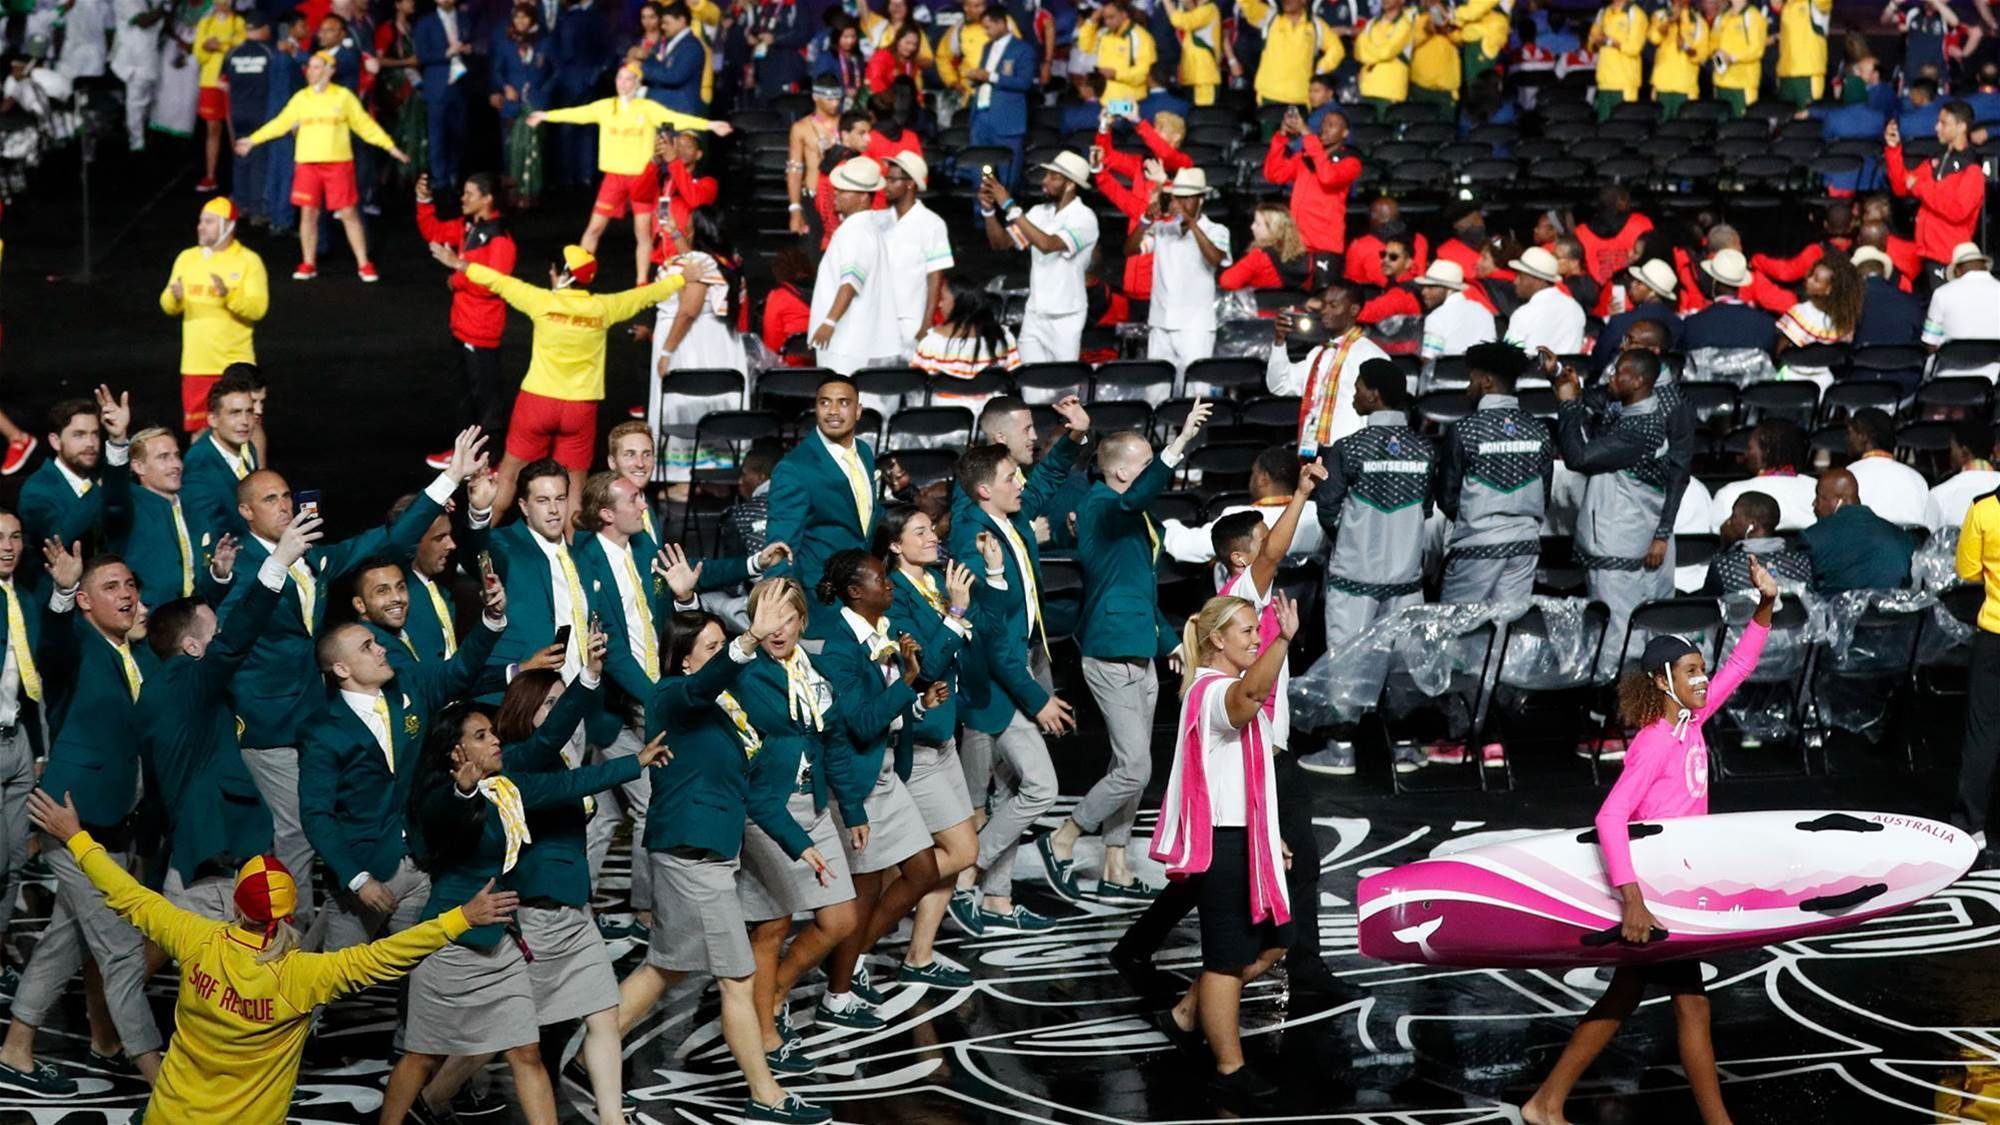 Top moments 2018: Commonwealth Games leads way in equality